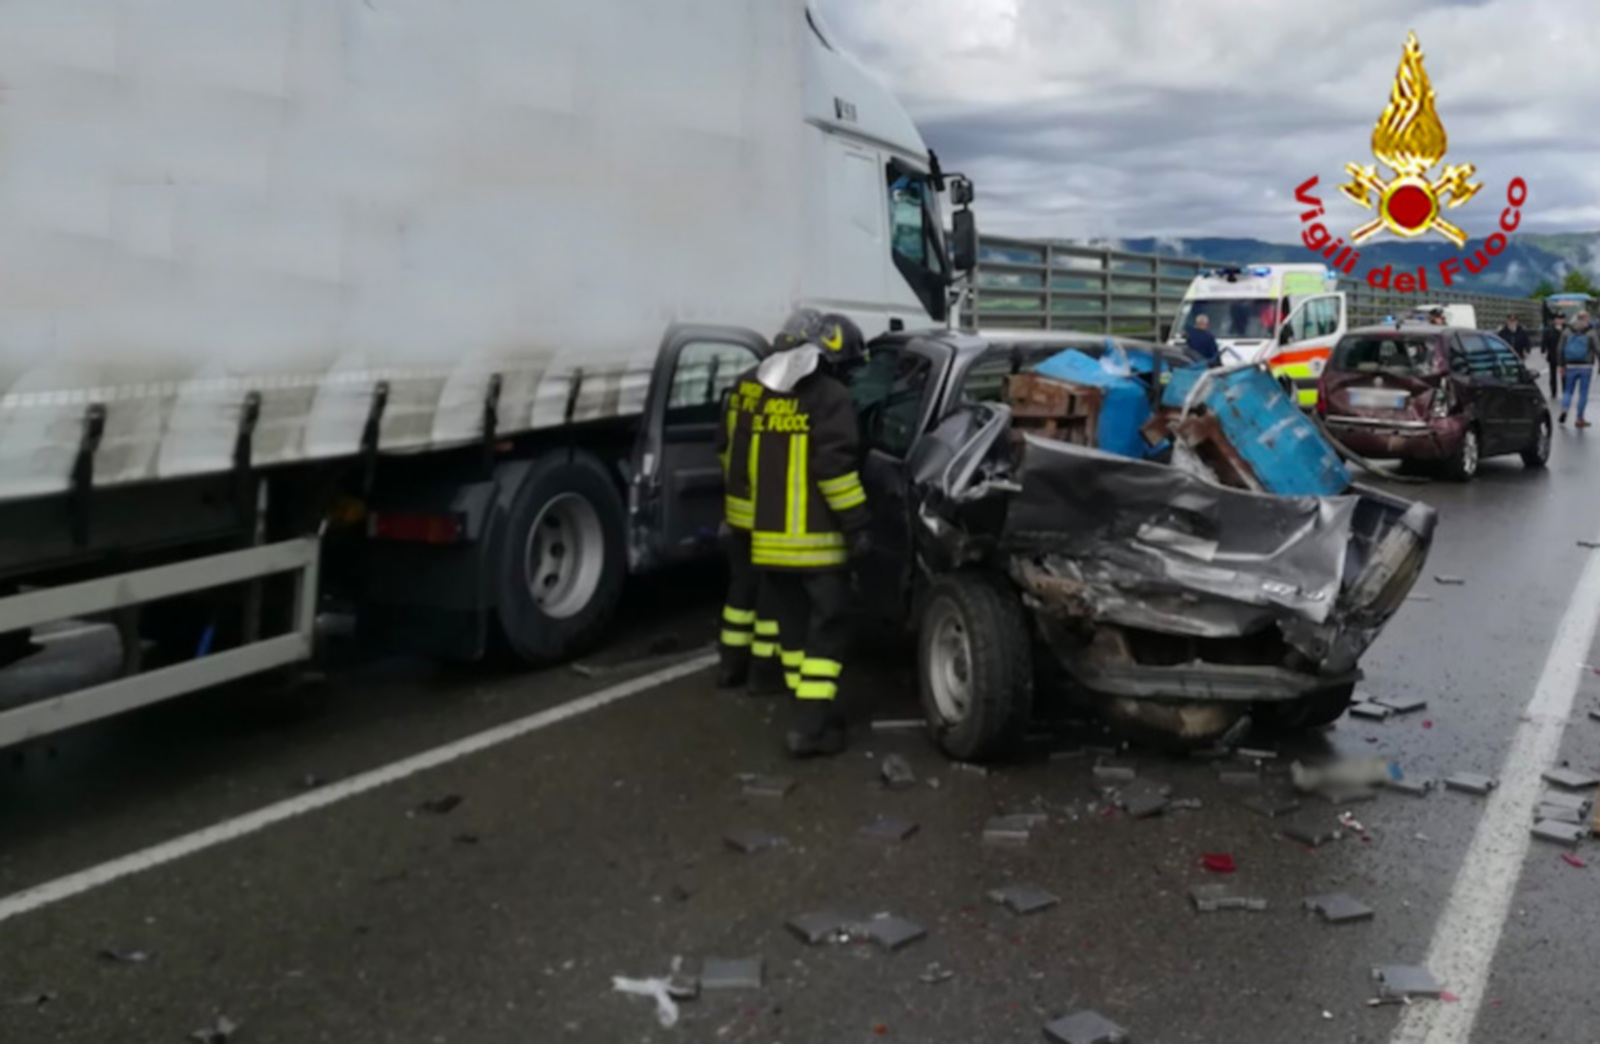 Strade di sangue in Mugello. Un altro incidente mortale stamani a Barberino